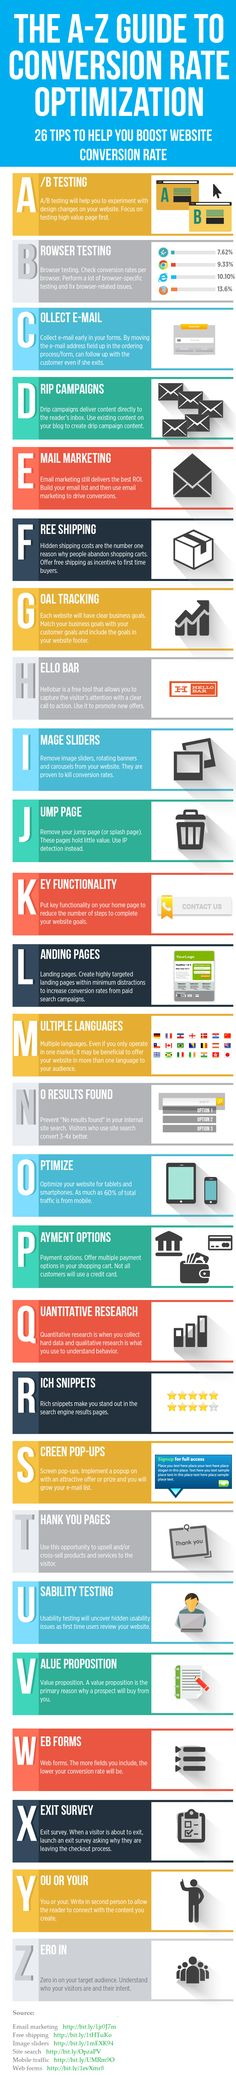 The A-Z Guide to Conversion Rate Optimization (Poster) #webconversion http://www.helpmequitthe9to5.com #websiteconversion